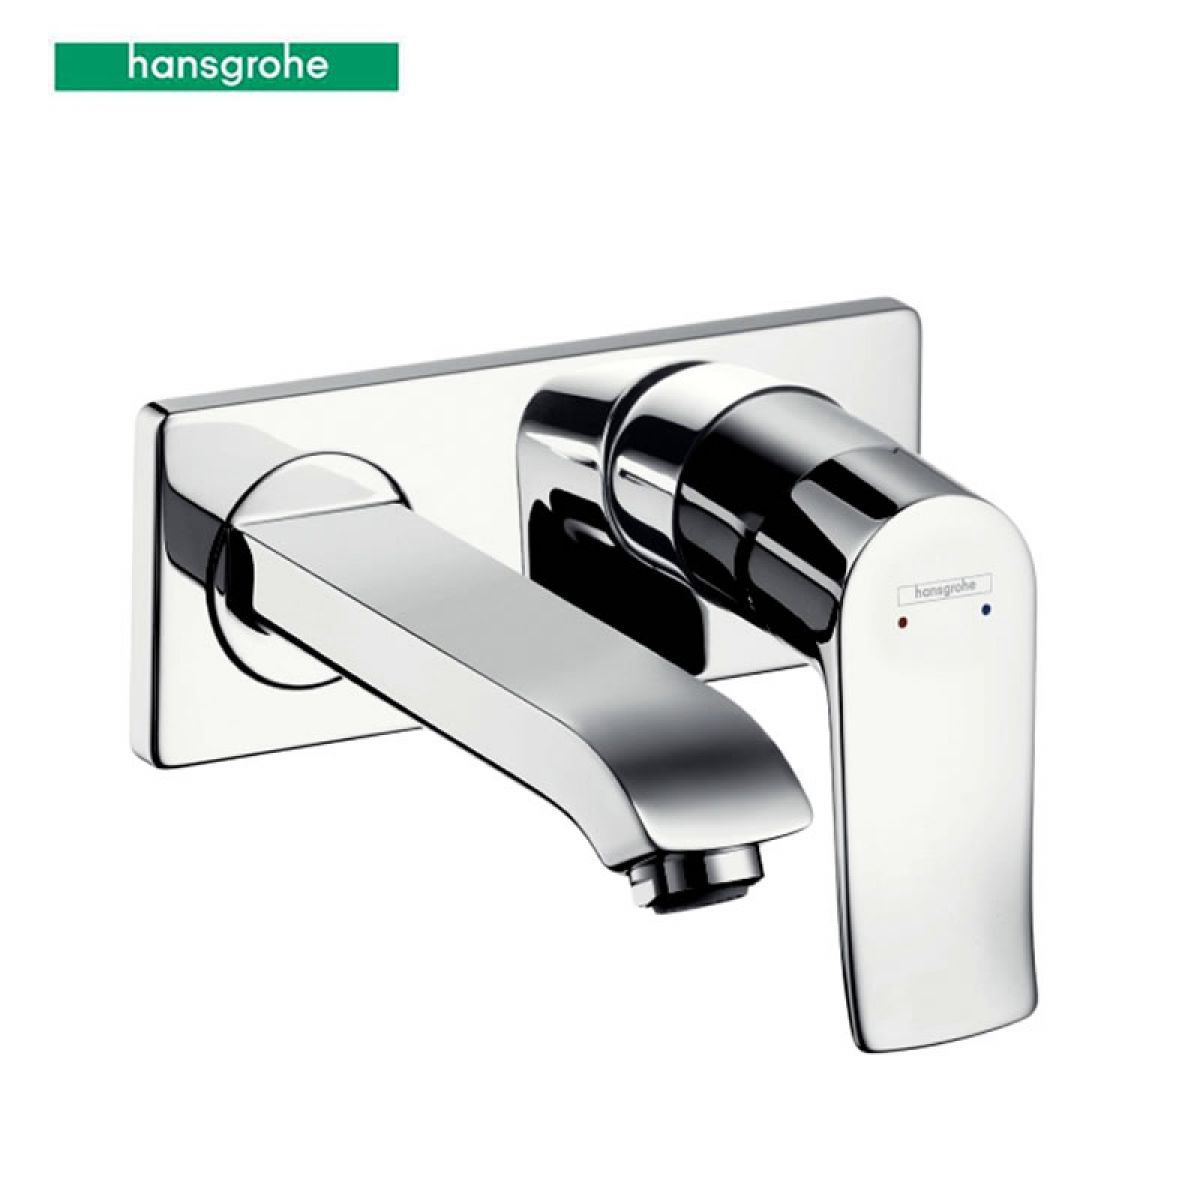 hansgrohe metris wall mounted basin mixer tap uk bathrooms. Black Bedroom Furniture Sets. Home Design Ideas